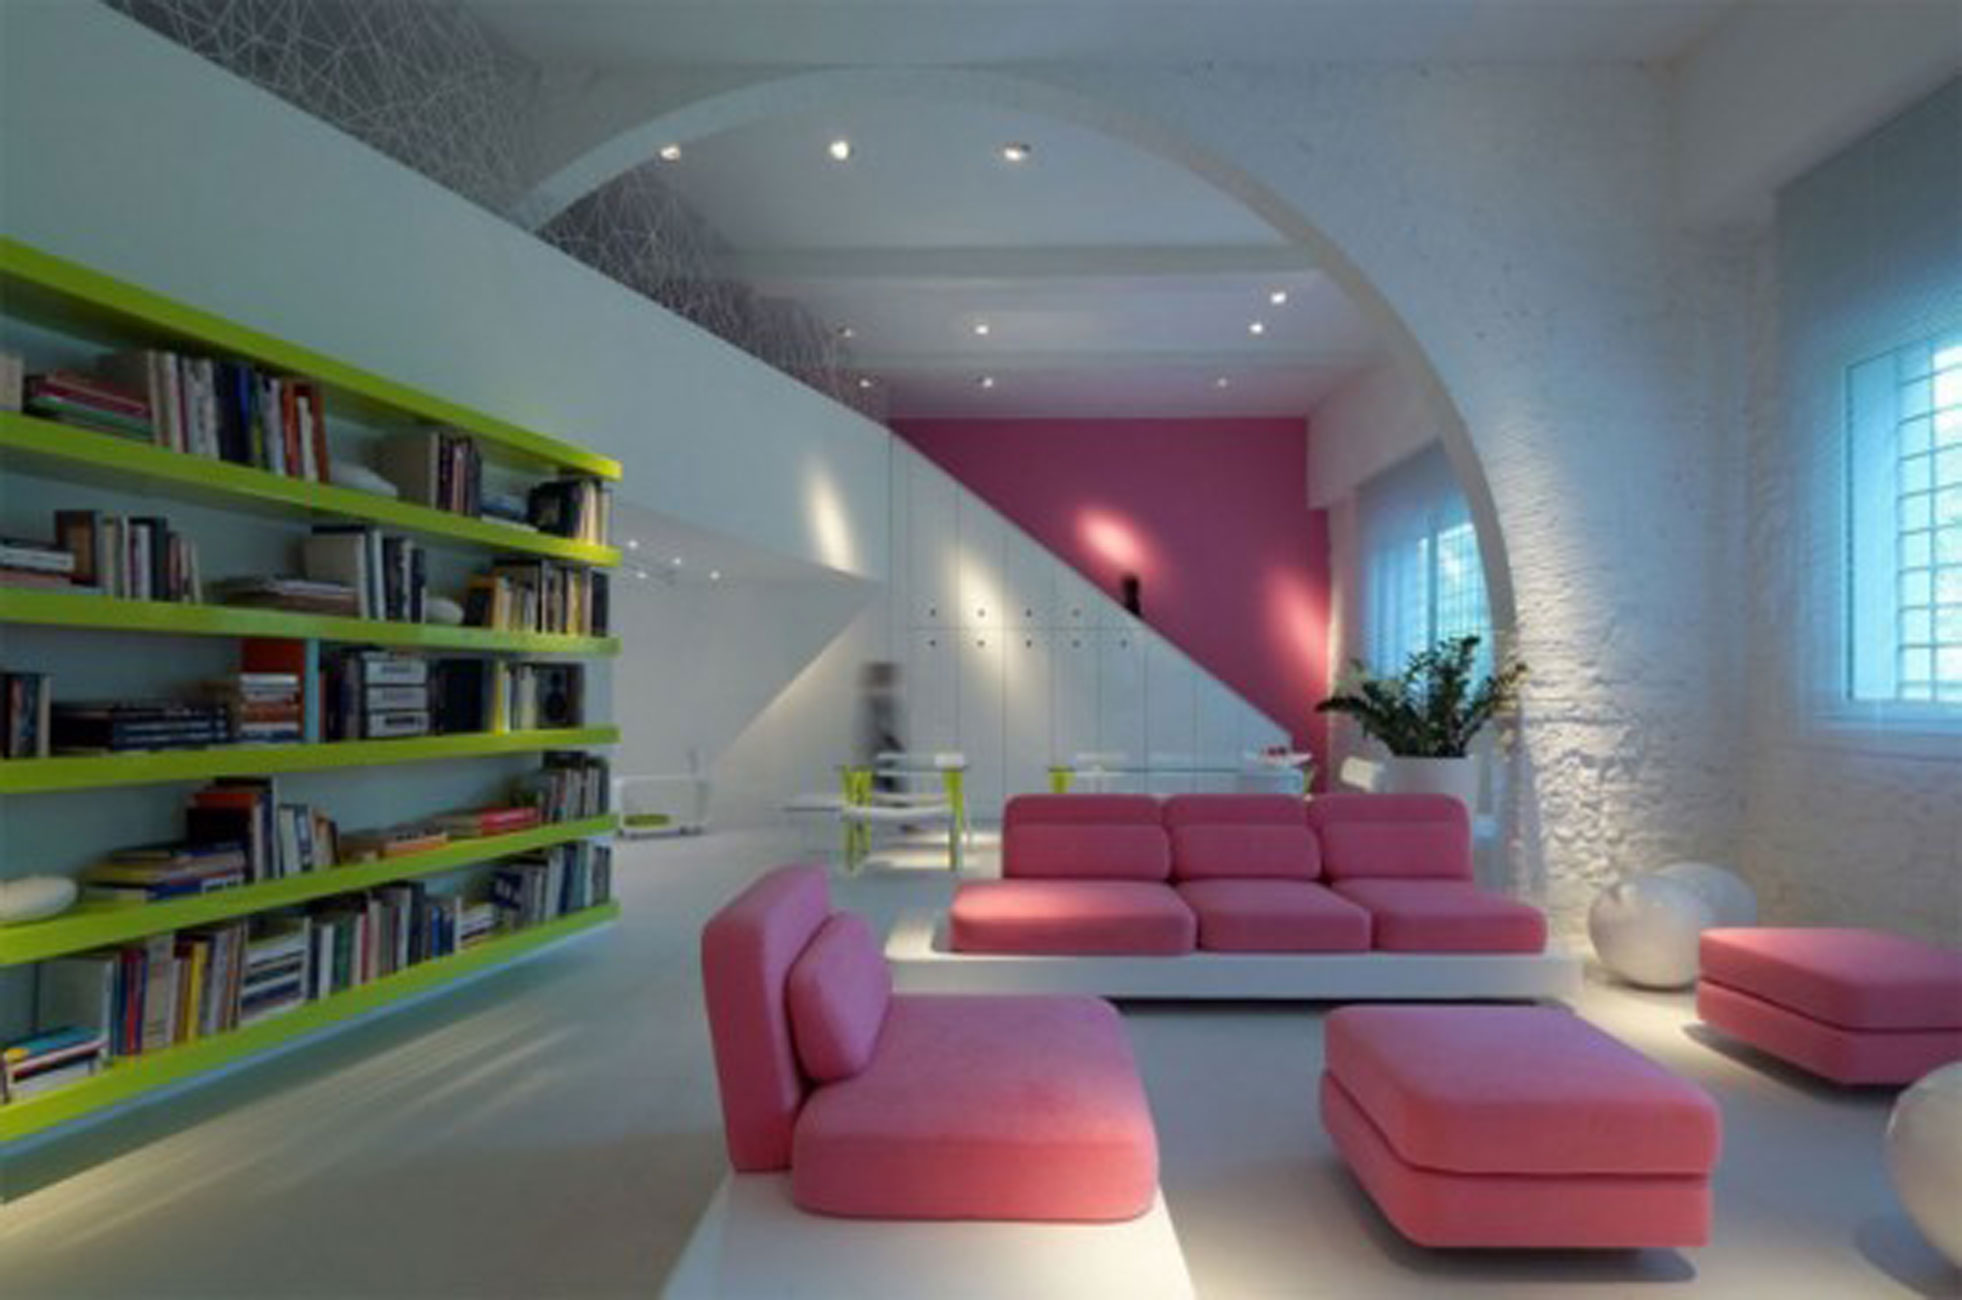 Modern and Colorful House Design Decorated with Bright Lamps - Livingroom